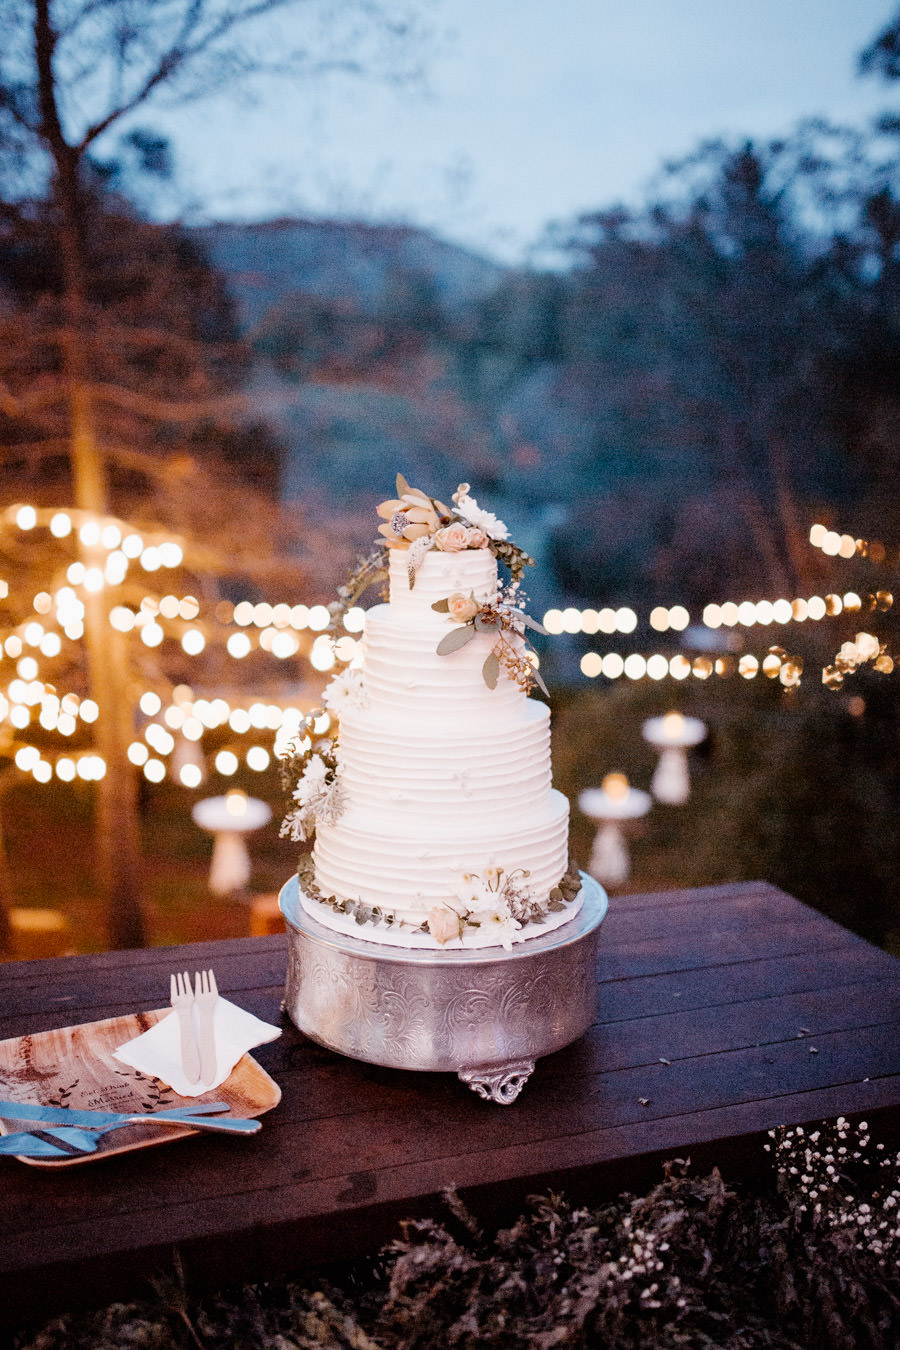 wedding cake looking beautiful and delicious